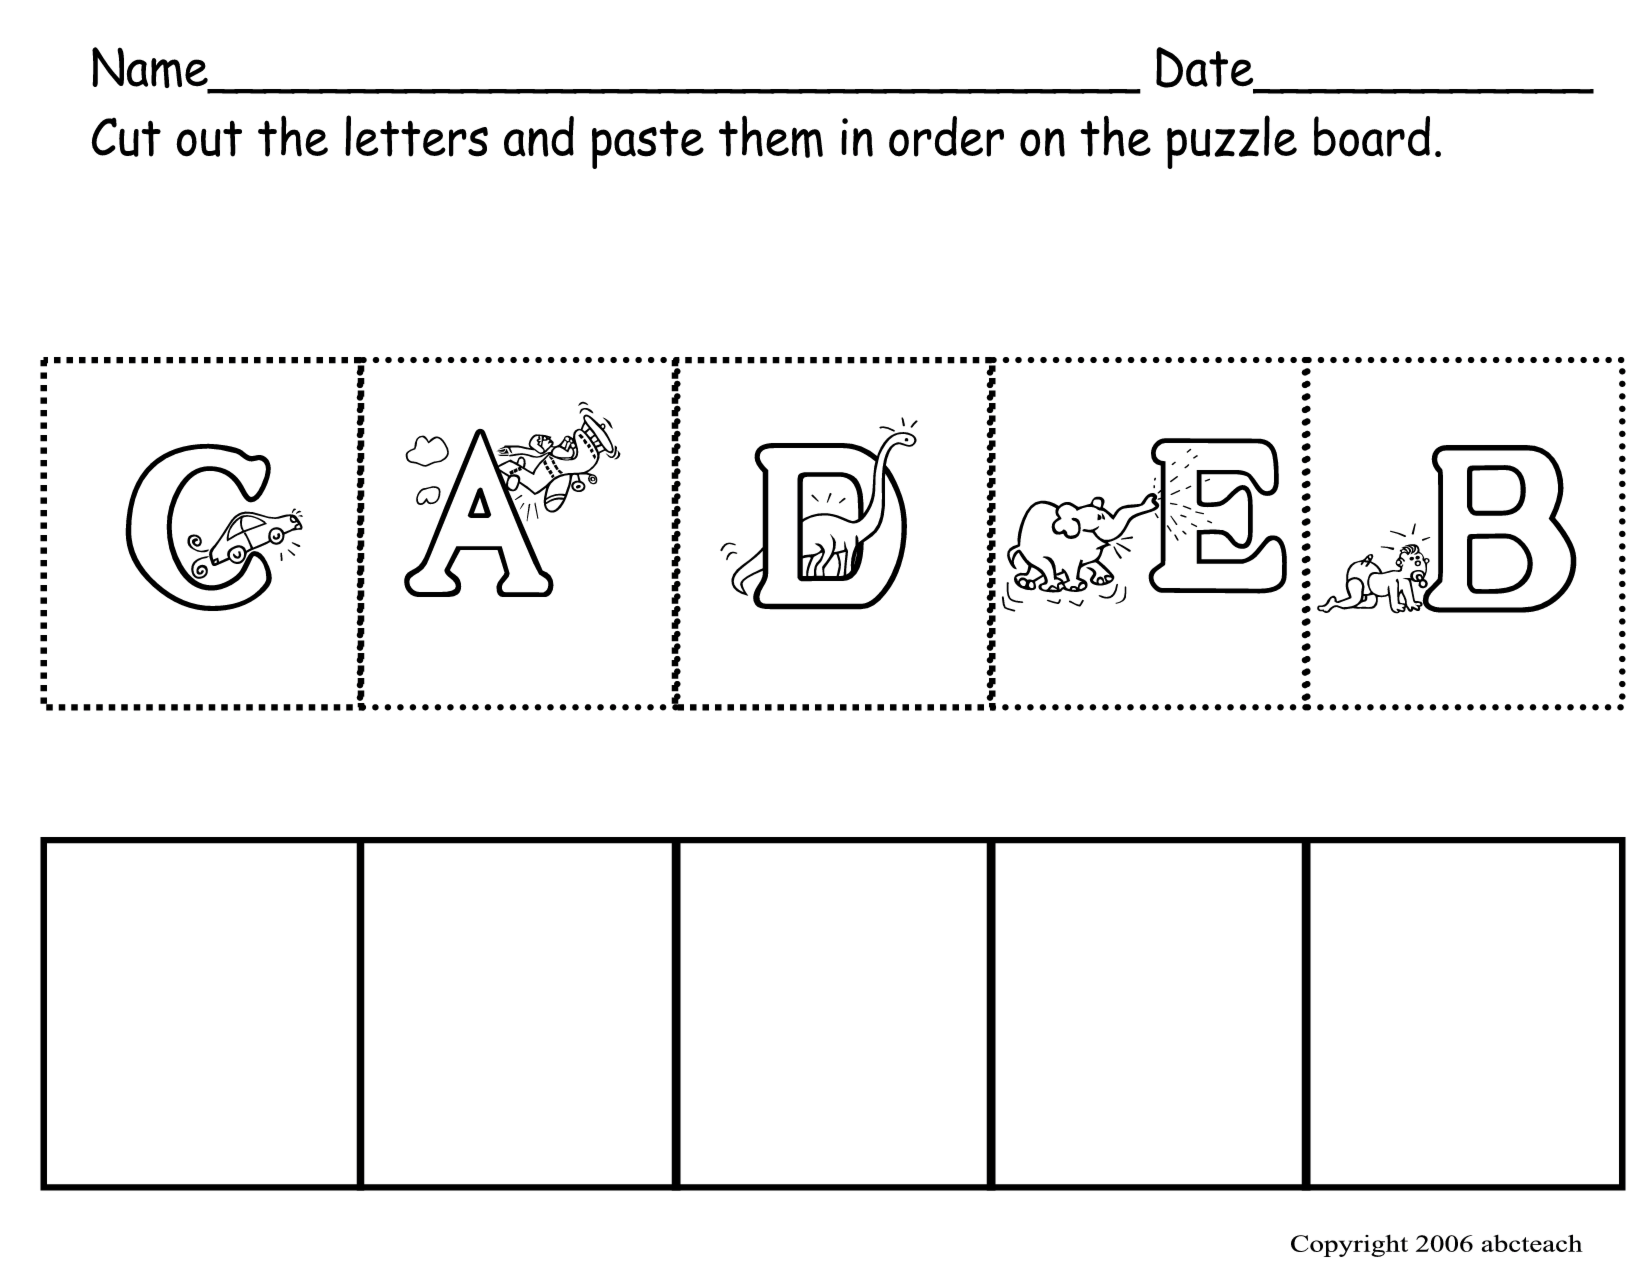 Alphabet Worksheets for Preschoolers | Abc Preschool Worksheets ...